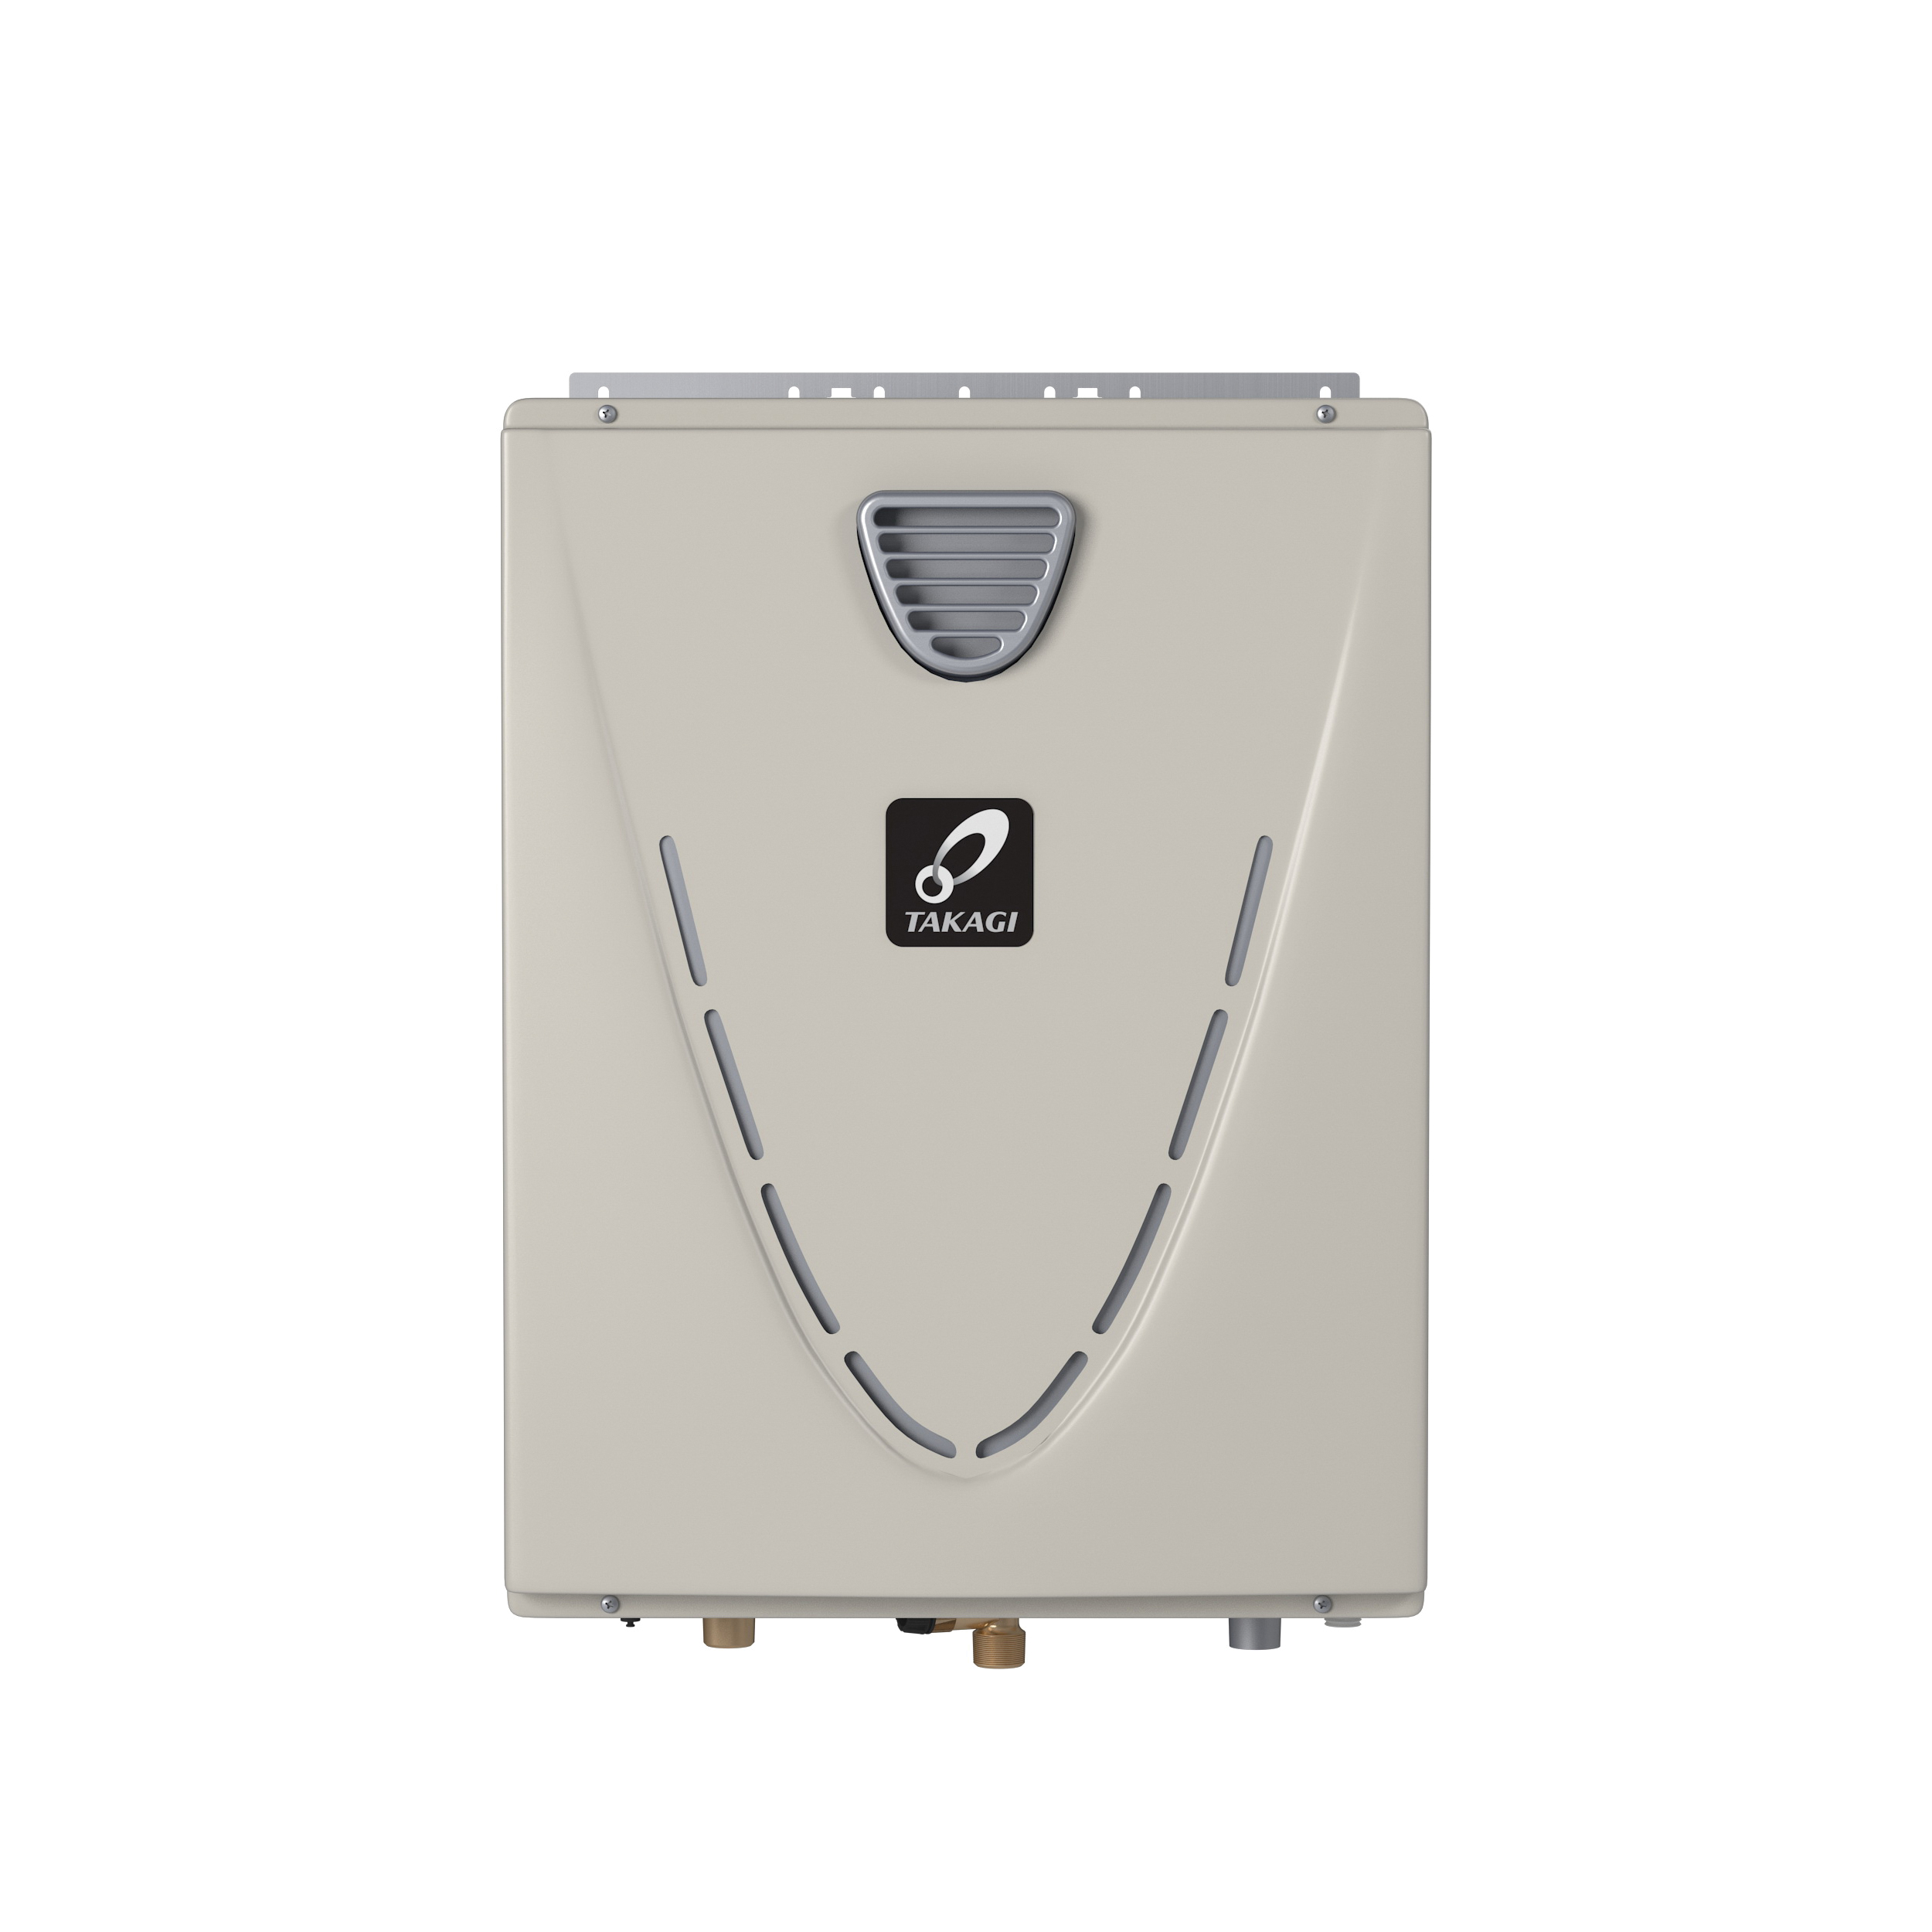 Takagi 100123465 H3S Tankless Water Heater, Liquid Propane, 180000 Btu/hr Heating, Outdoor, Condensing, 8 gpm, 4 in, 0.9 Energy Factor, Commercial/Residential/Dual: Dual, Ultra Low NOx: Yes